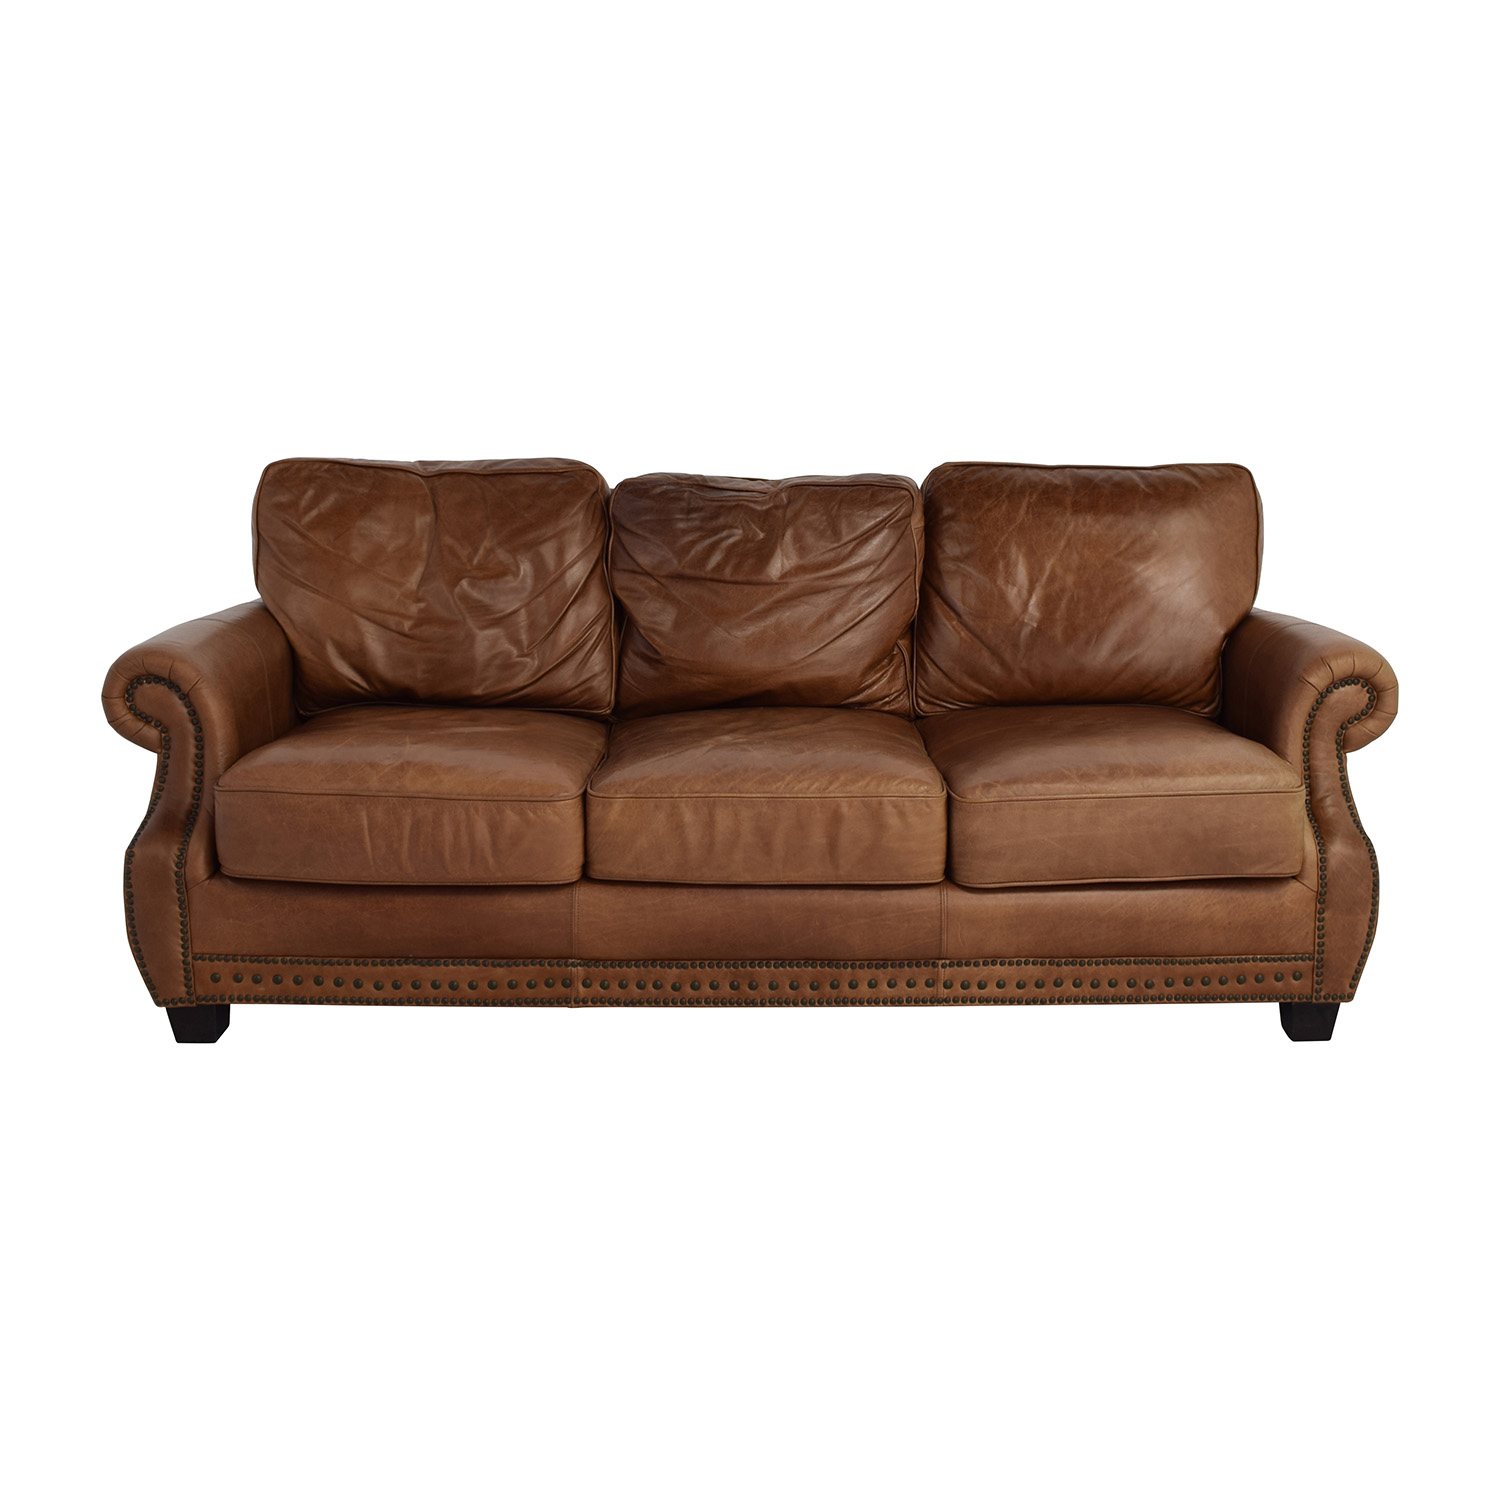 Second Hand Leather Sofas Chesterfield Sofa